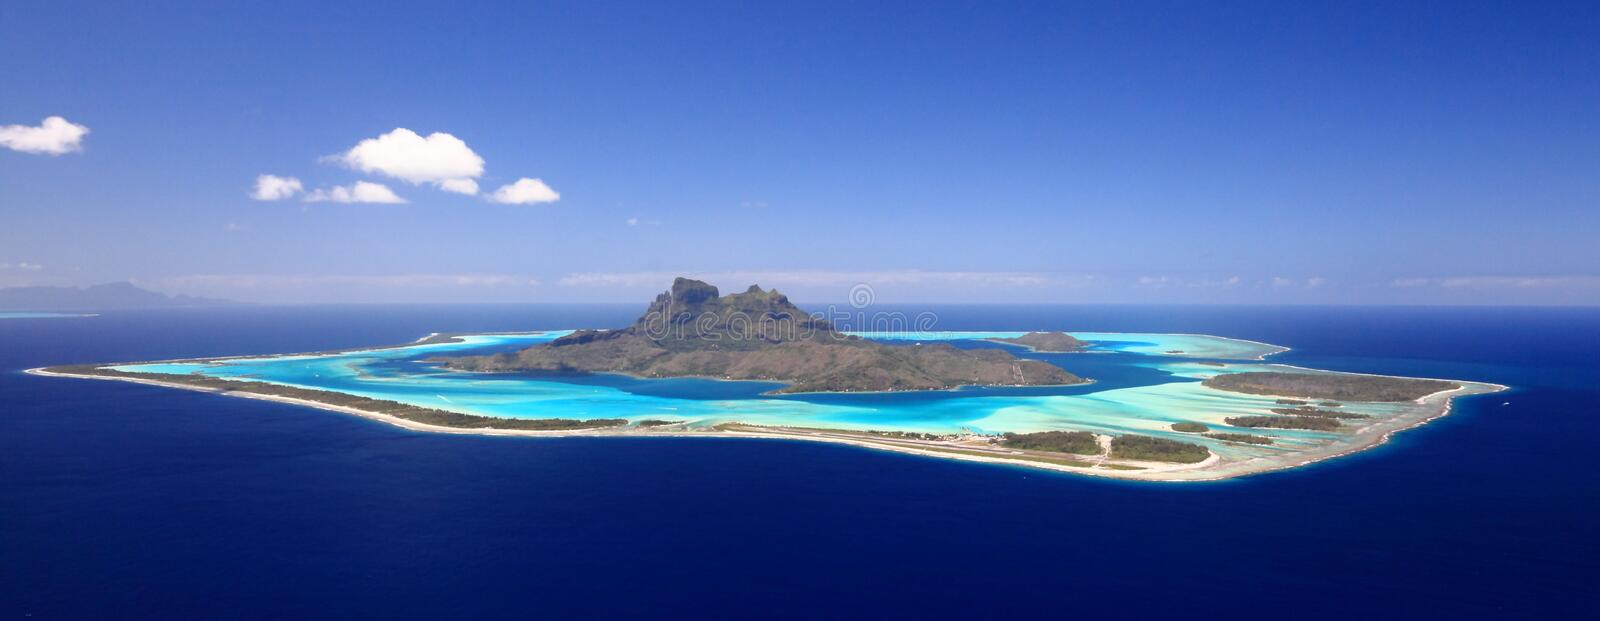 Bora Bora photographie stock